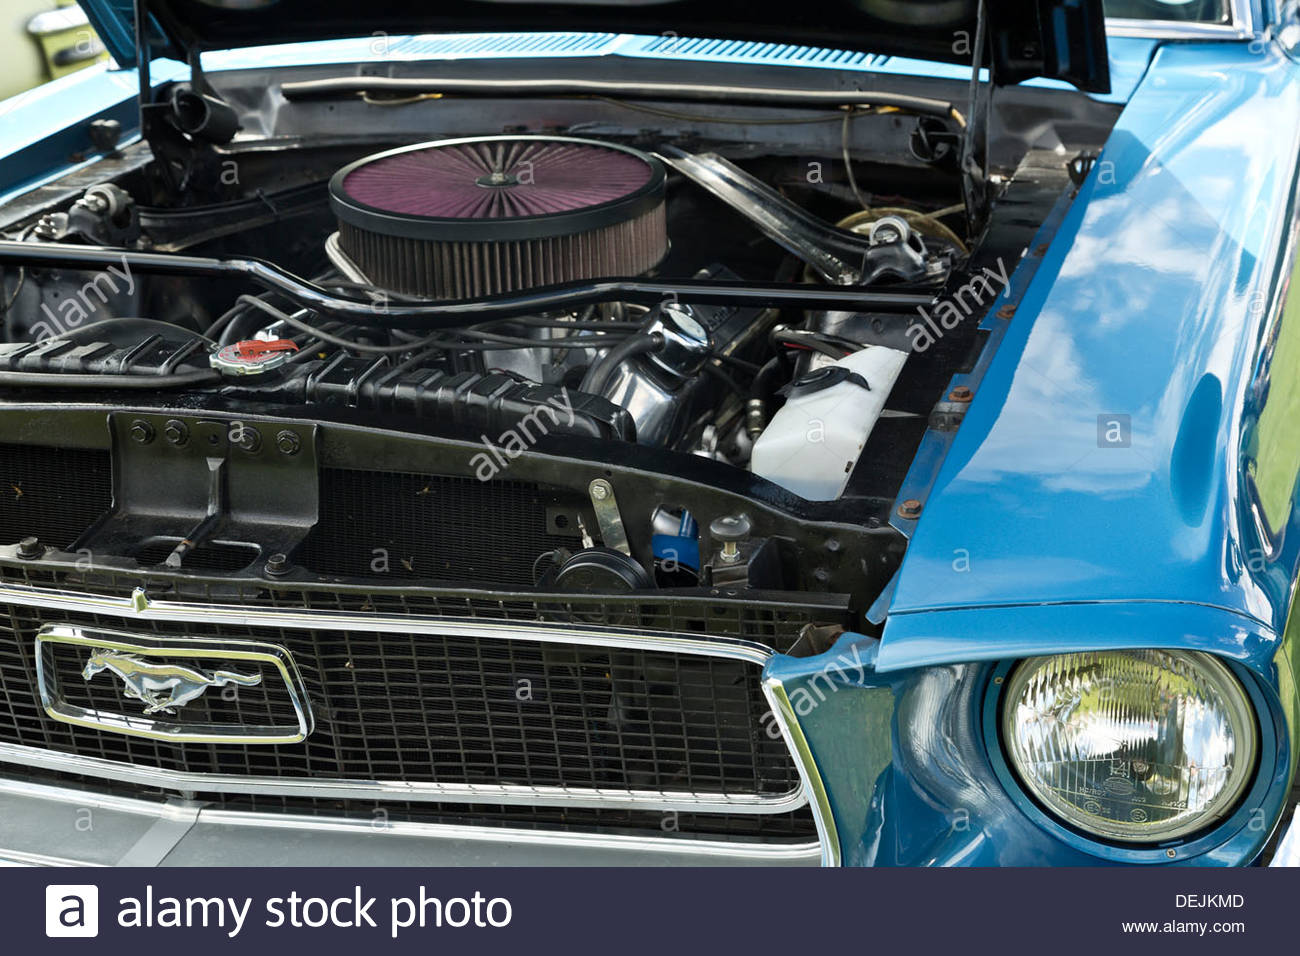 PC: https://www.alamy.com/stock-photo-ford-mustang-302-engine-under-the-hood-american-auto-club-international-60646893.html